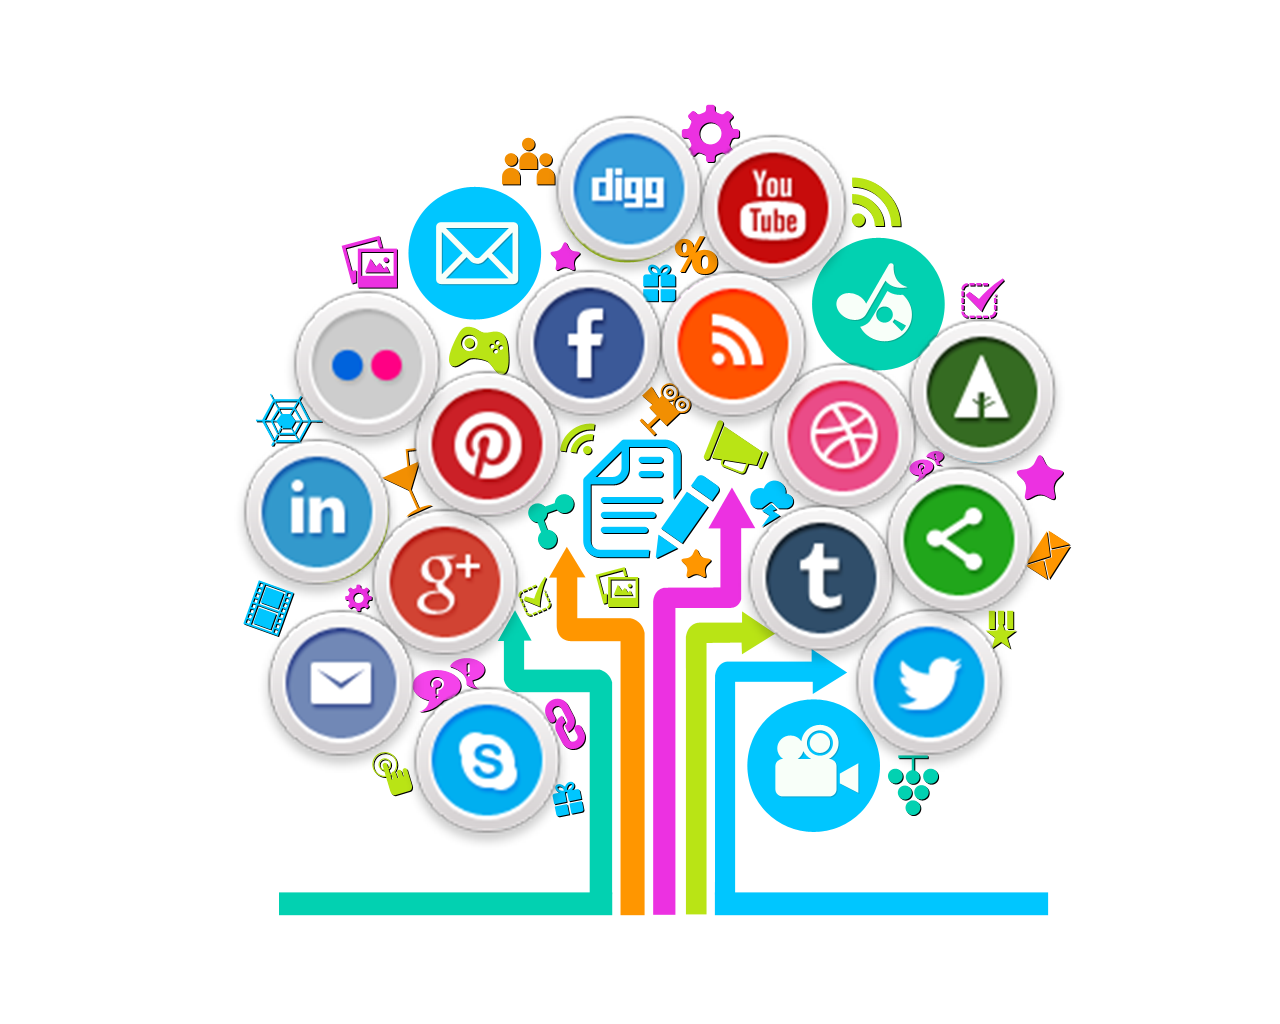 agencia de marketing digital en redes sociales a nivel continente